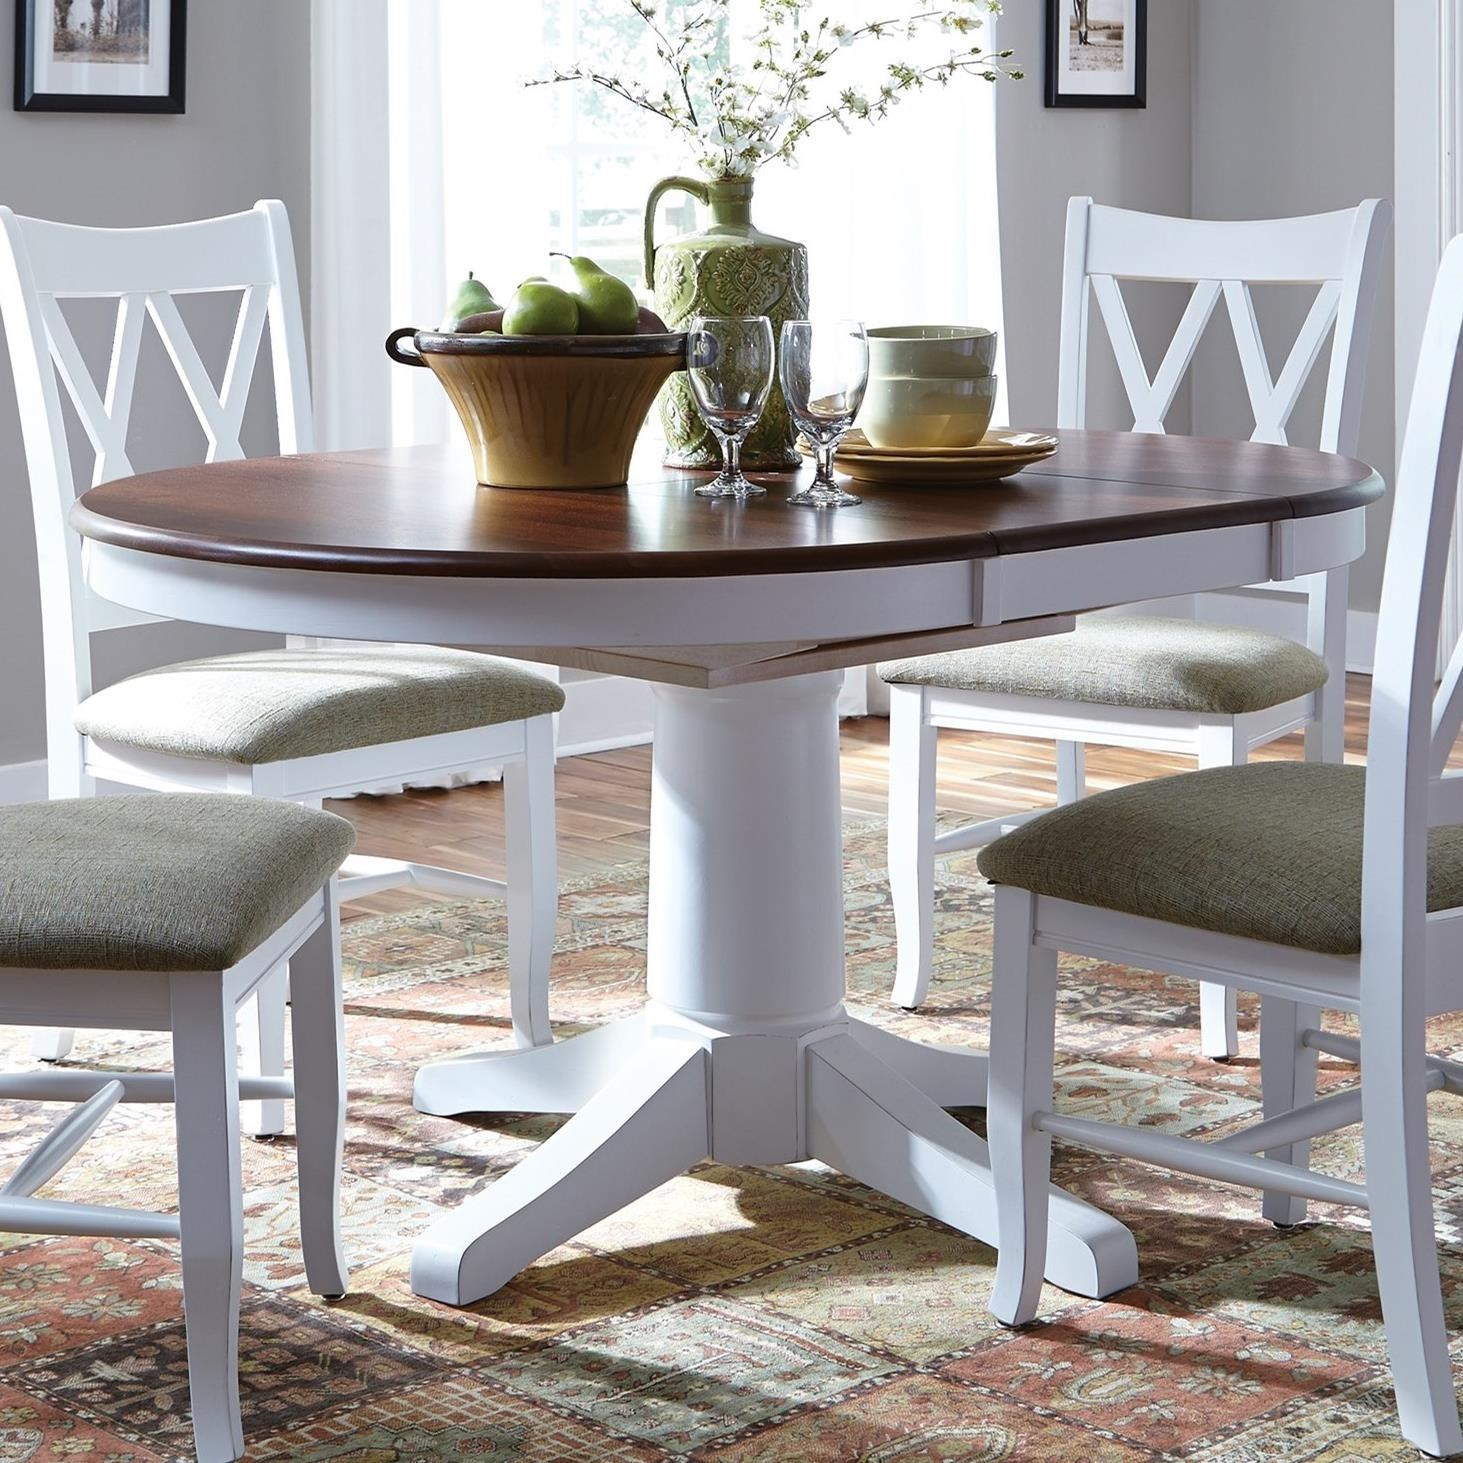 SELECT Dining Round Pedestal Dining Table With Butterfly Top By John Thomas  At Baeru0027s Furniture